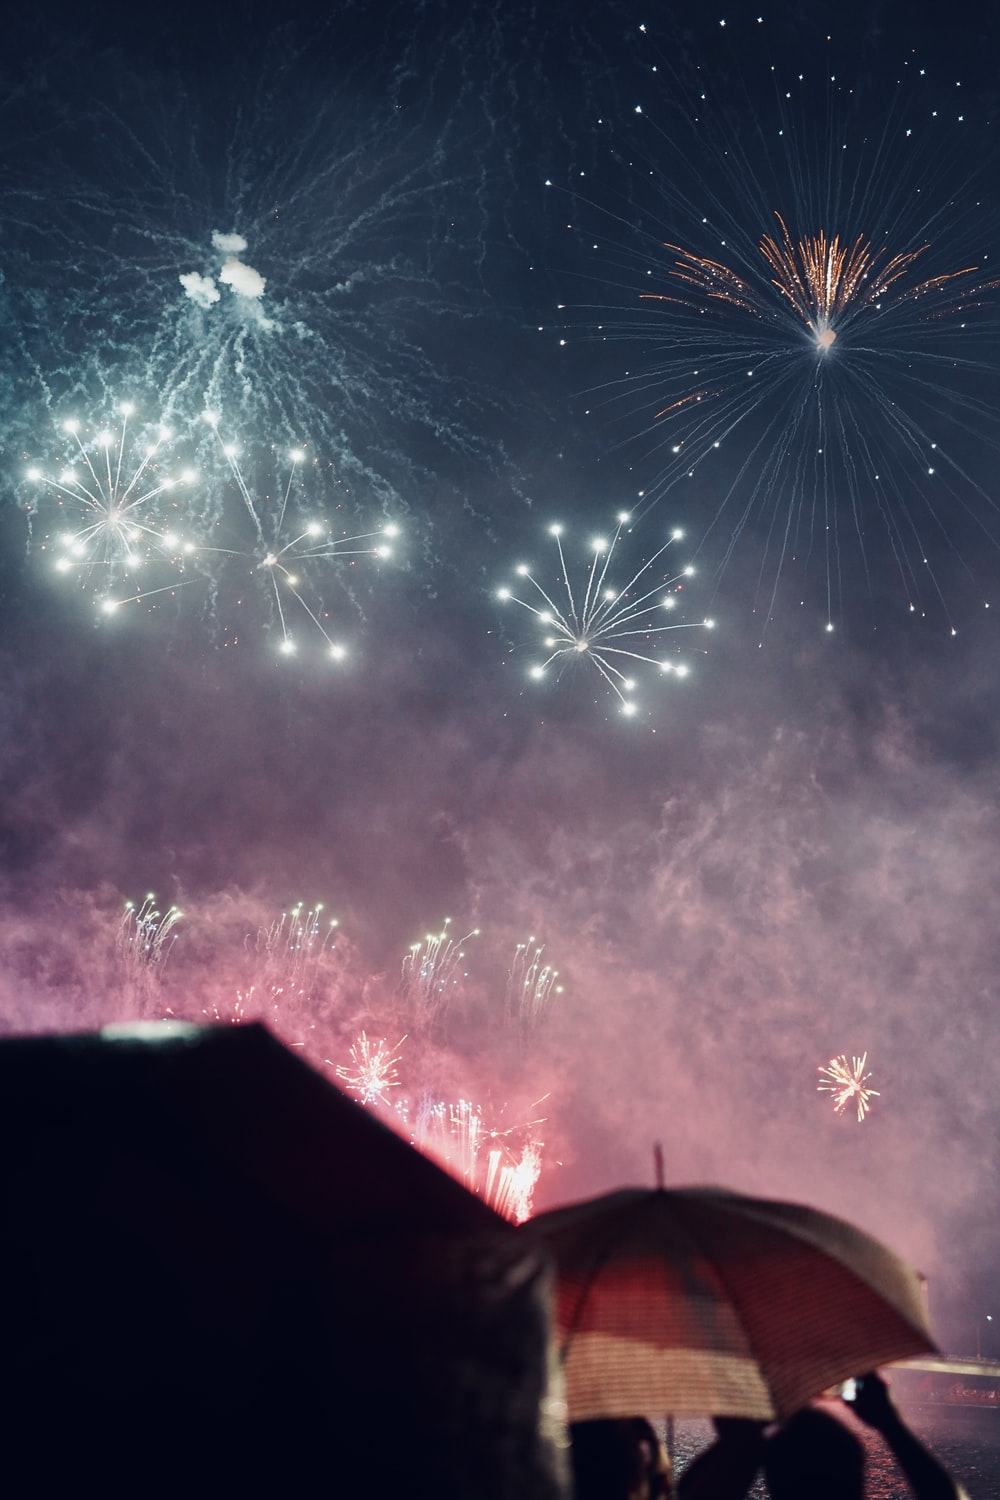 fireworks show at night